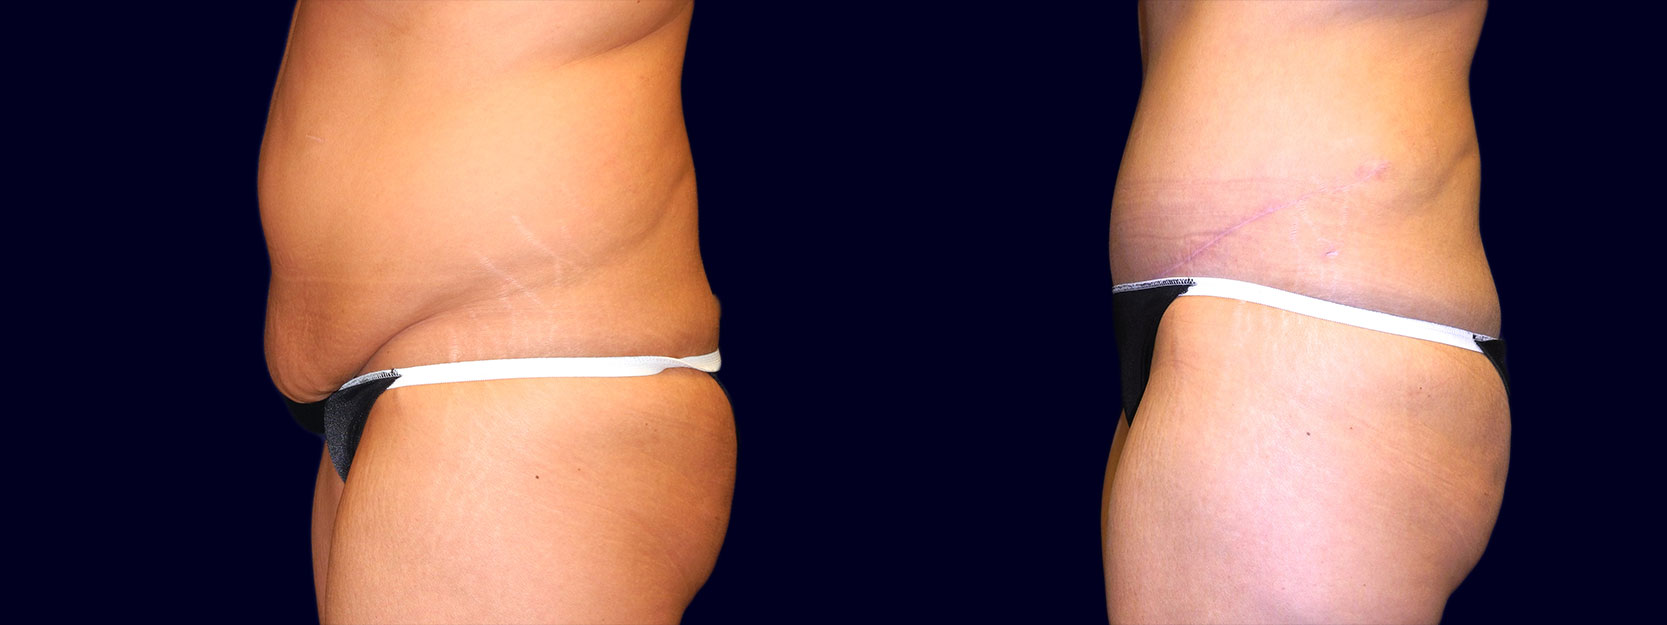 Left Profile View - Tummy Tuck After Weight Loss